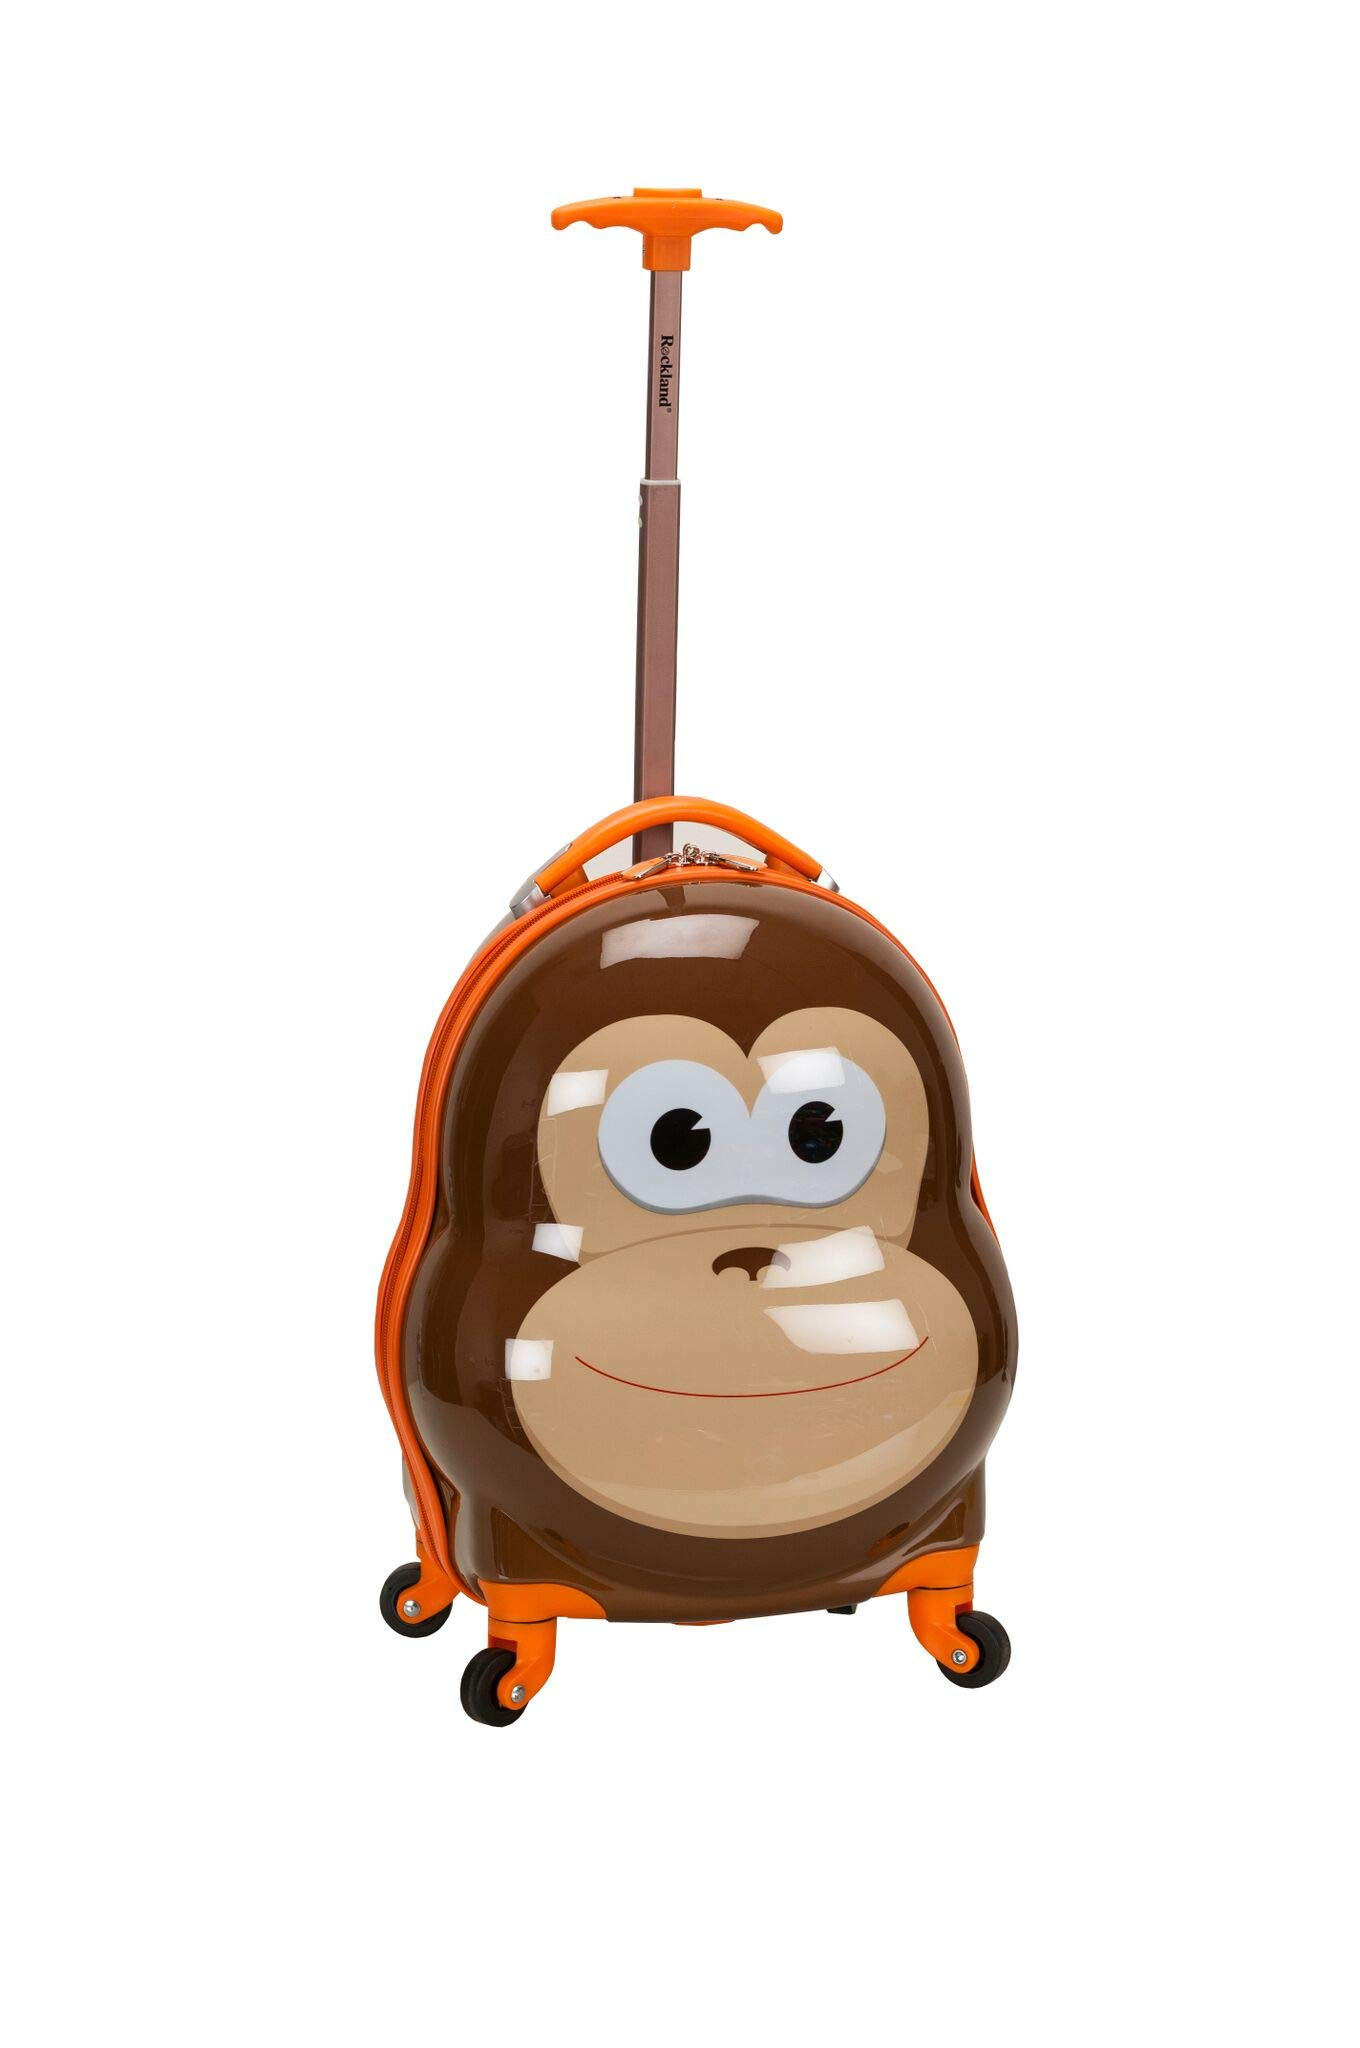 Rockland Jr. My First Luggage Hardside Carry-on (MONKEY)